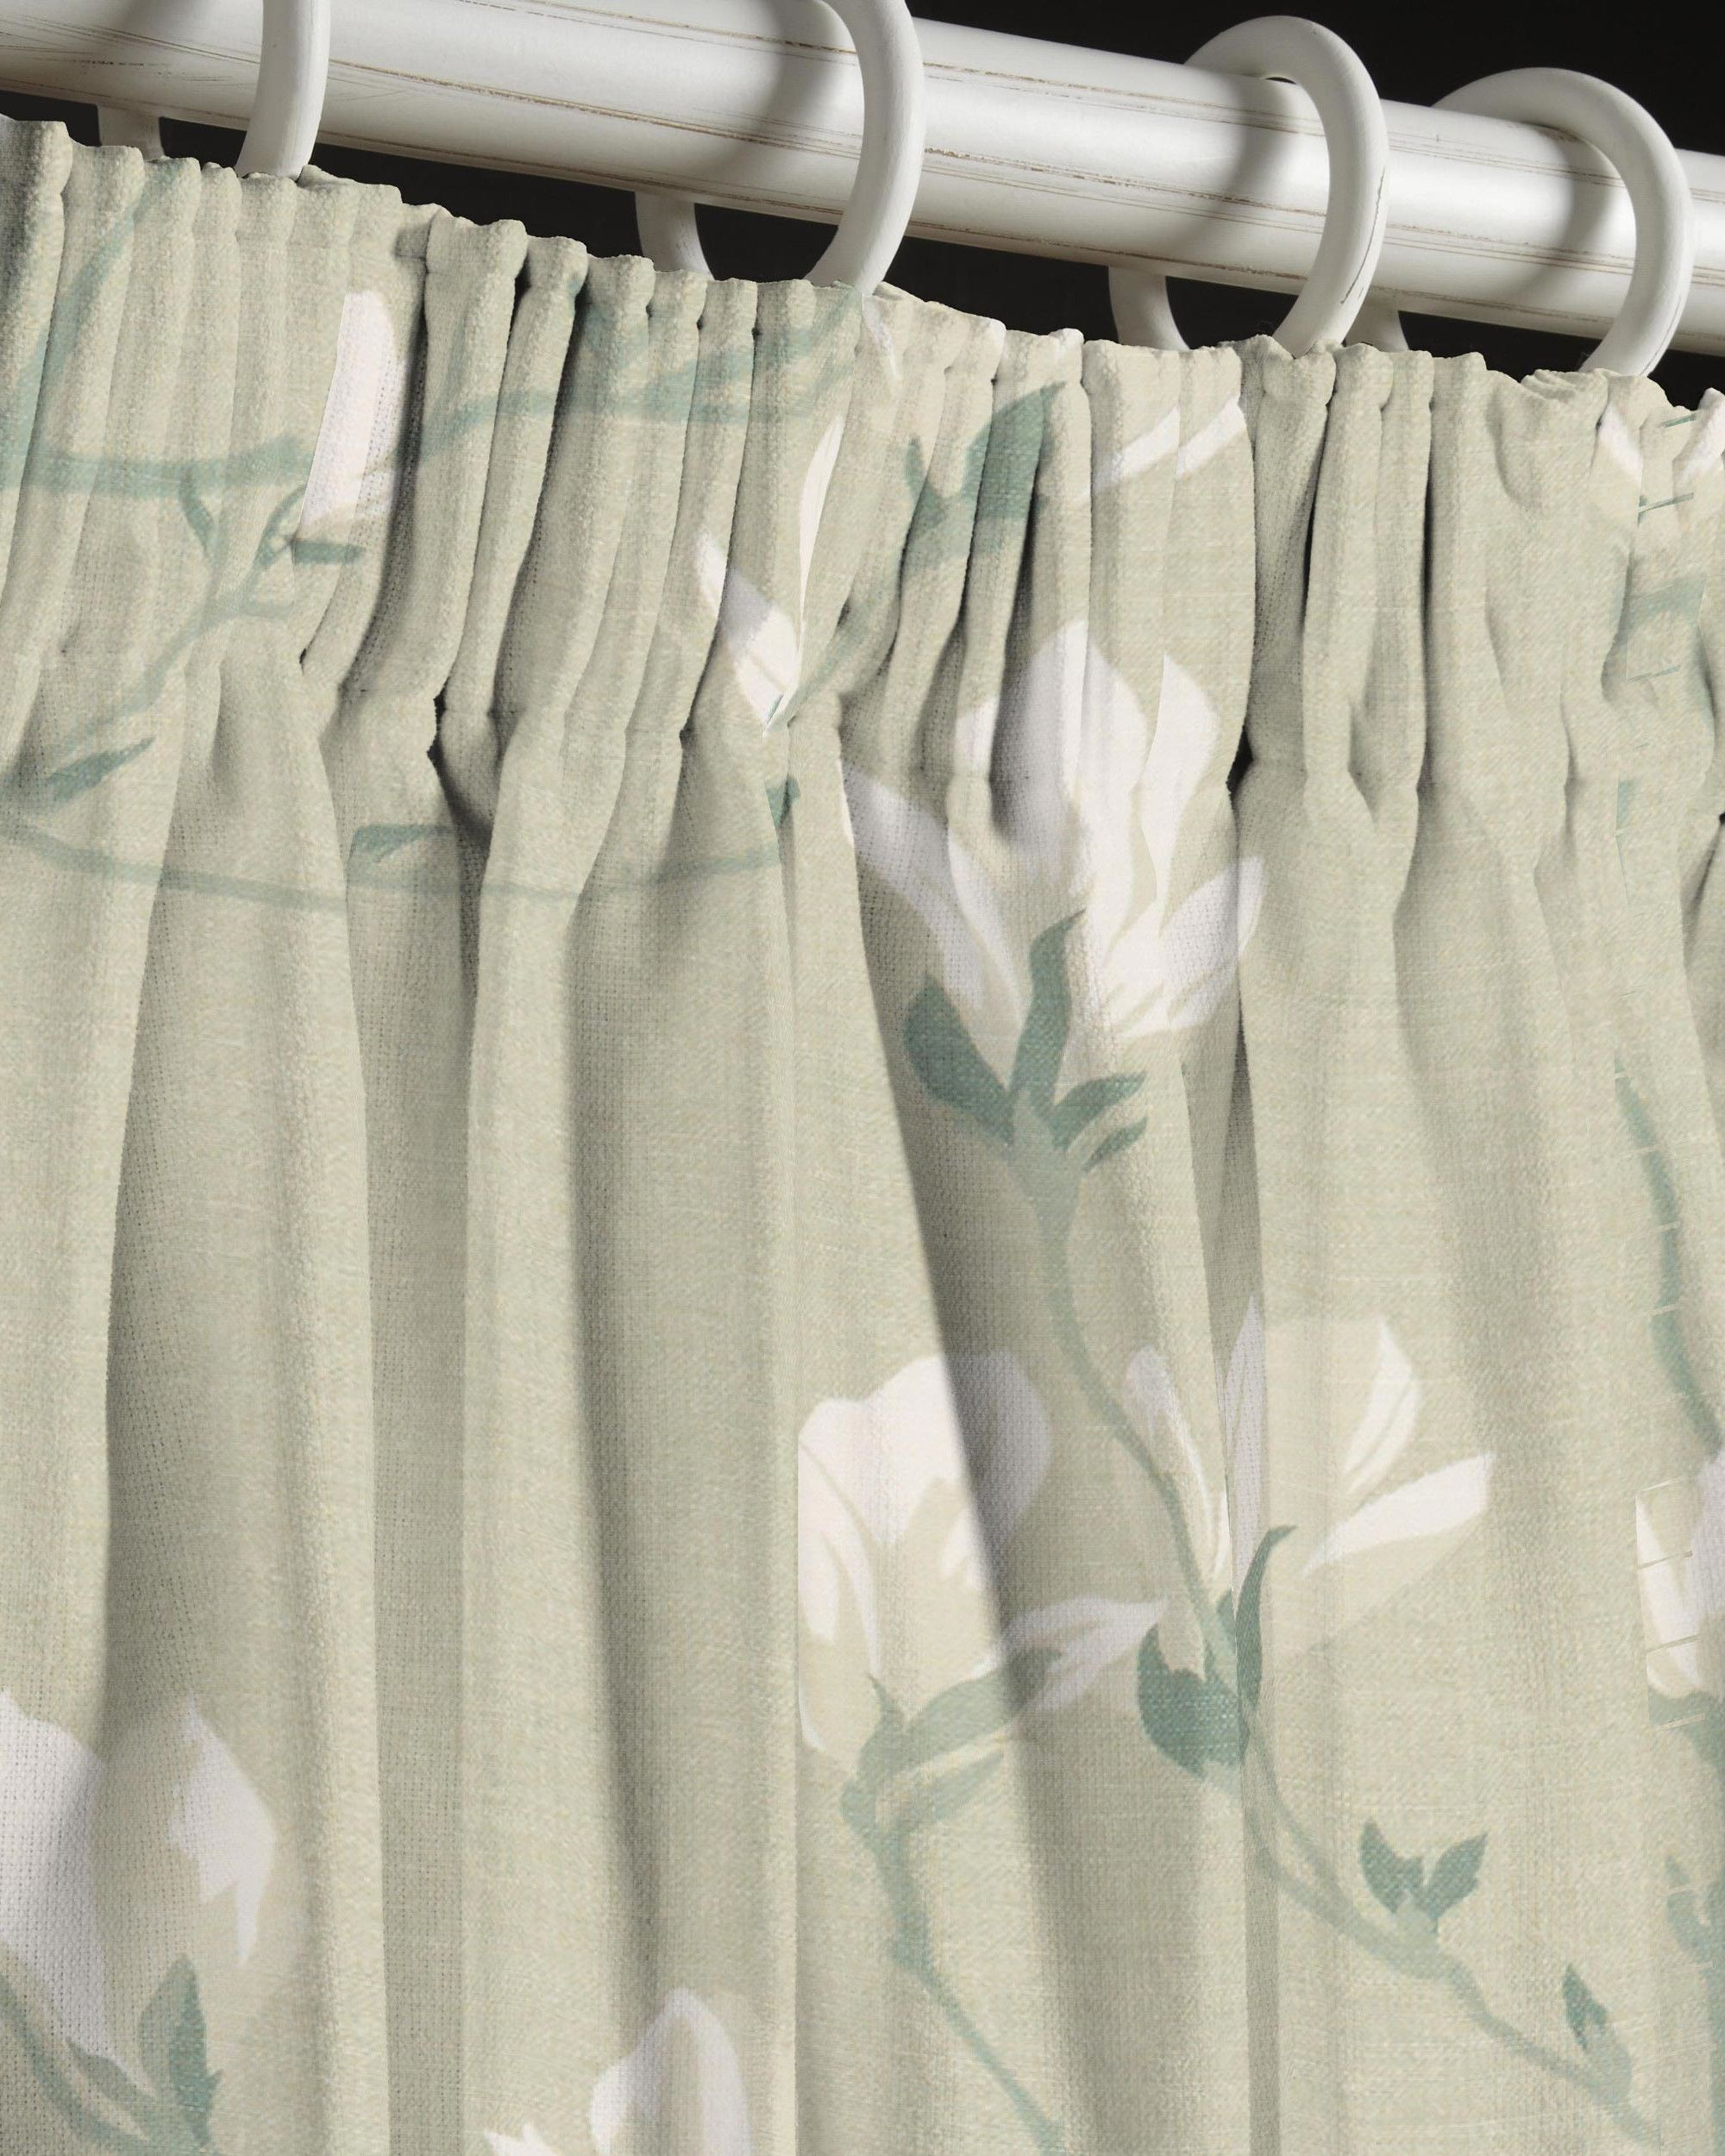 Made To Measure Curtains In Magnolia Grove Hedgerow